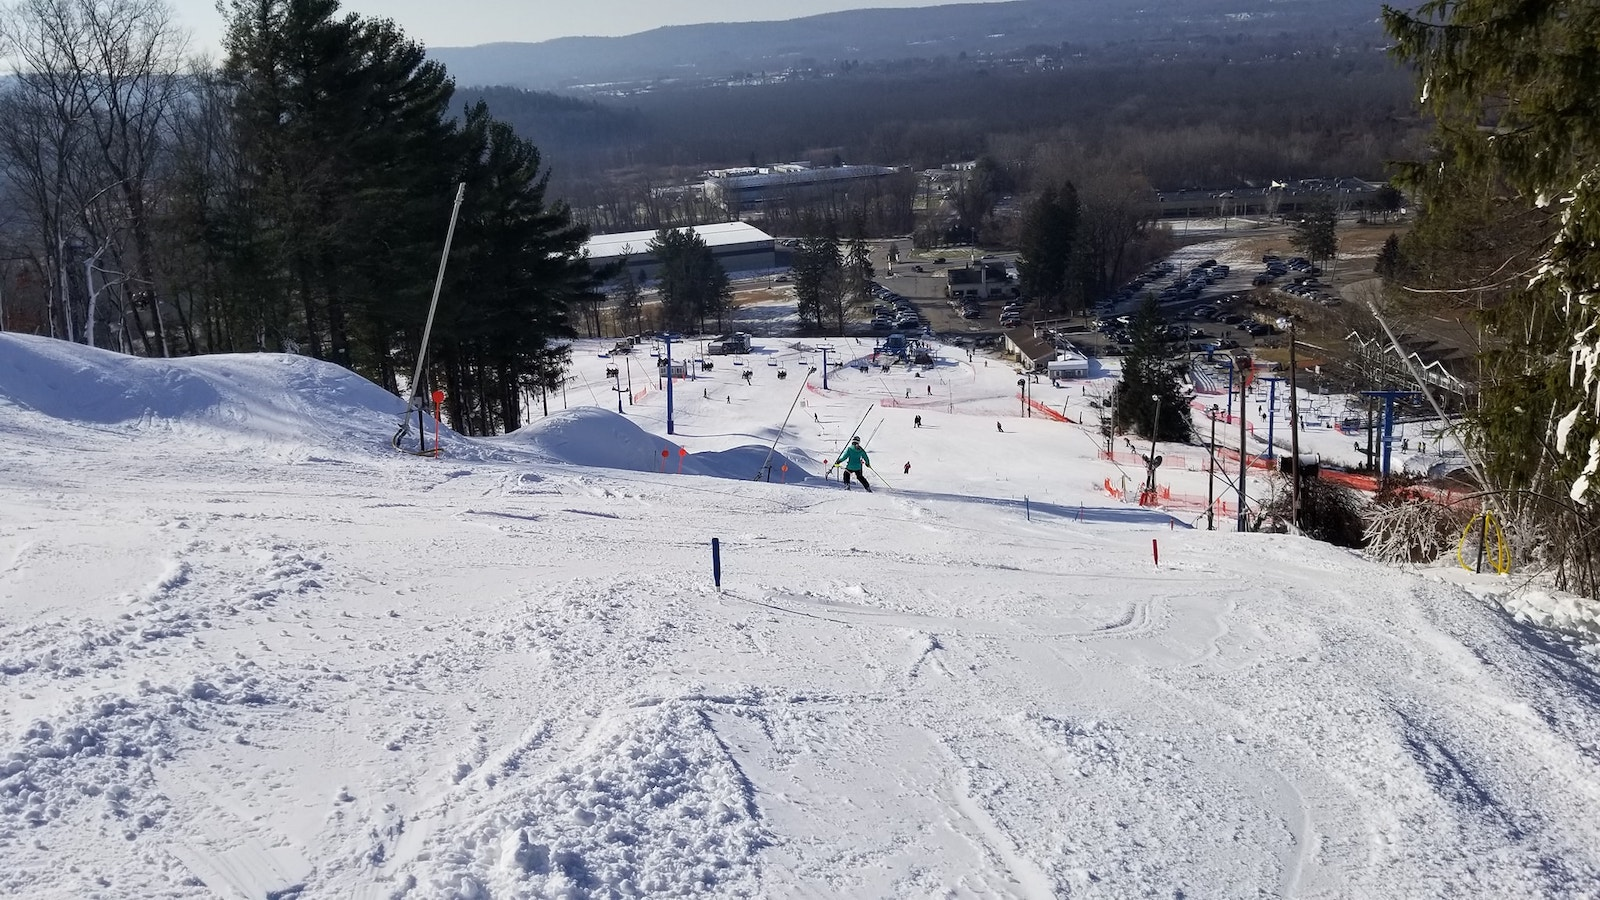 Image from the top of the slopes at Thunder Ridge Ski Area in New York